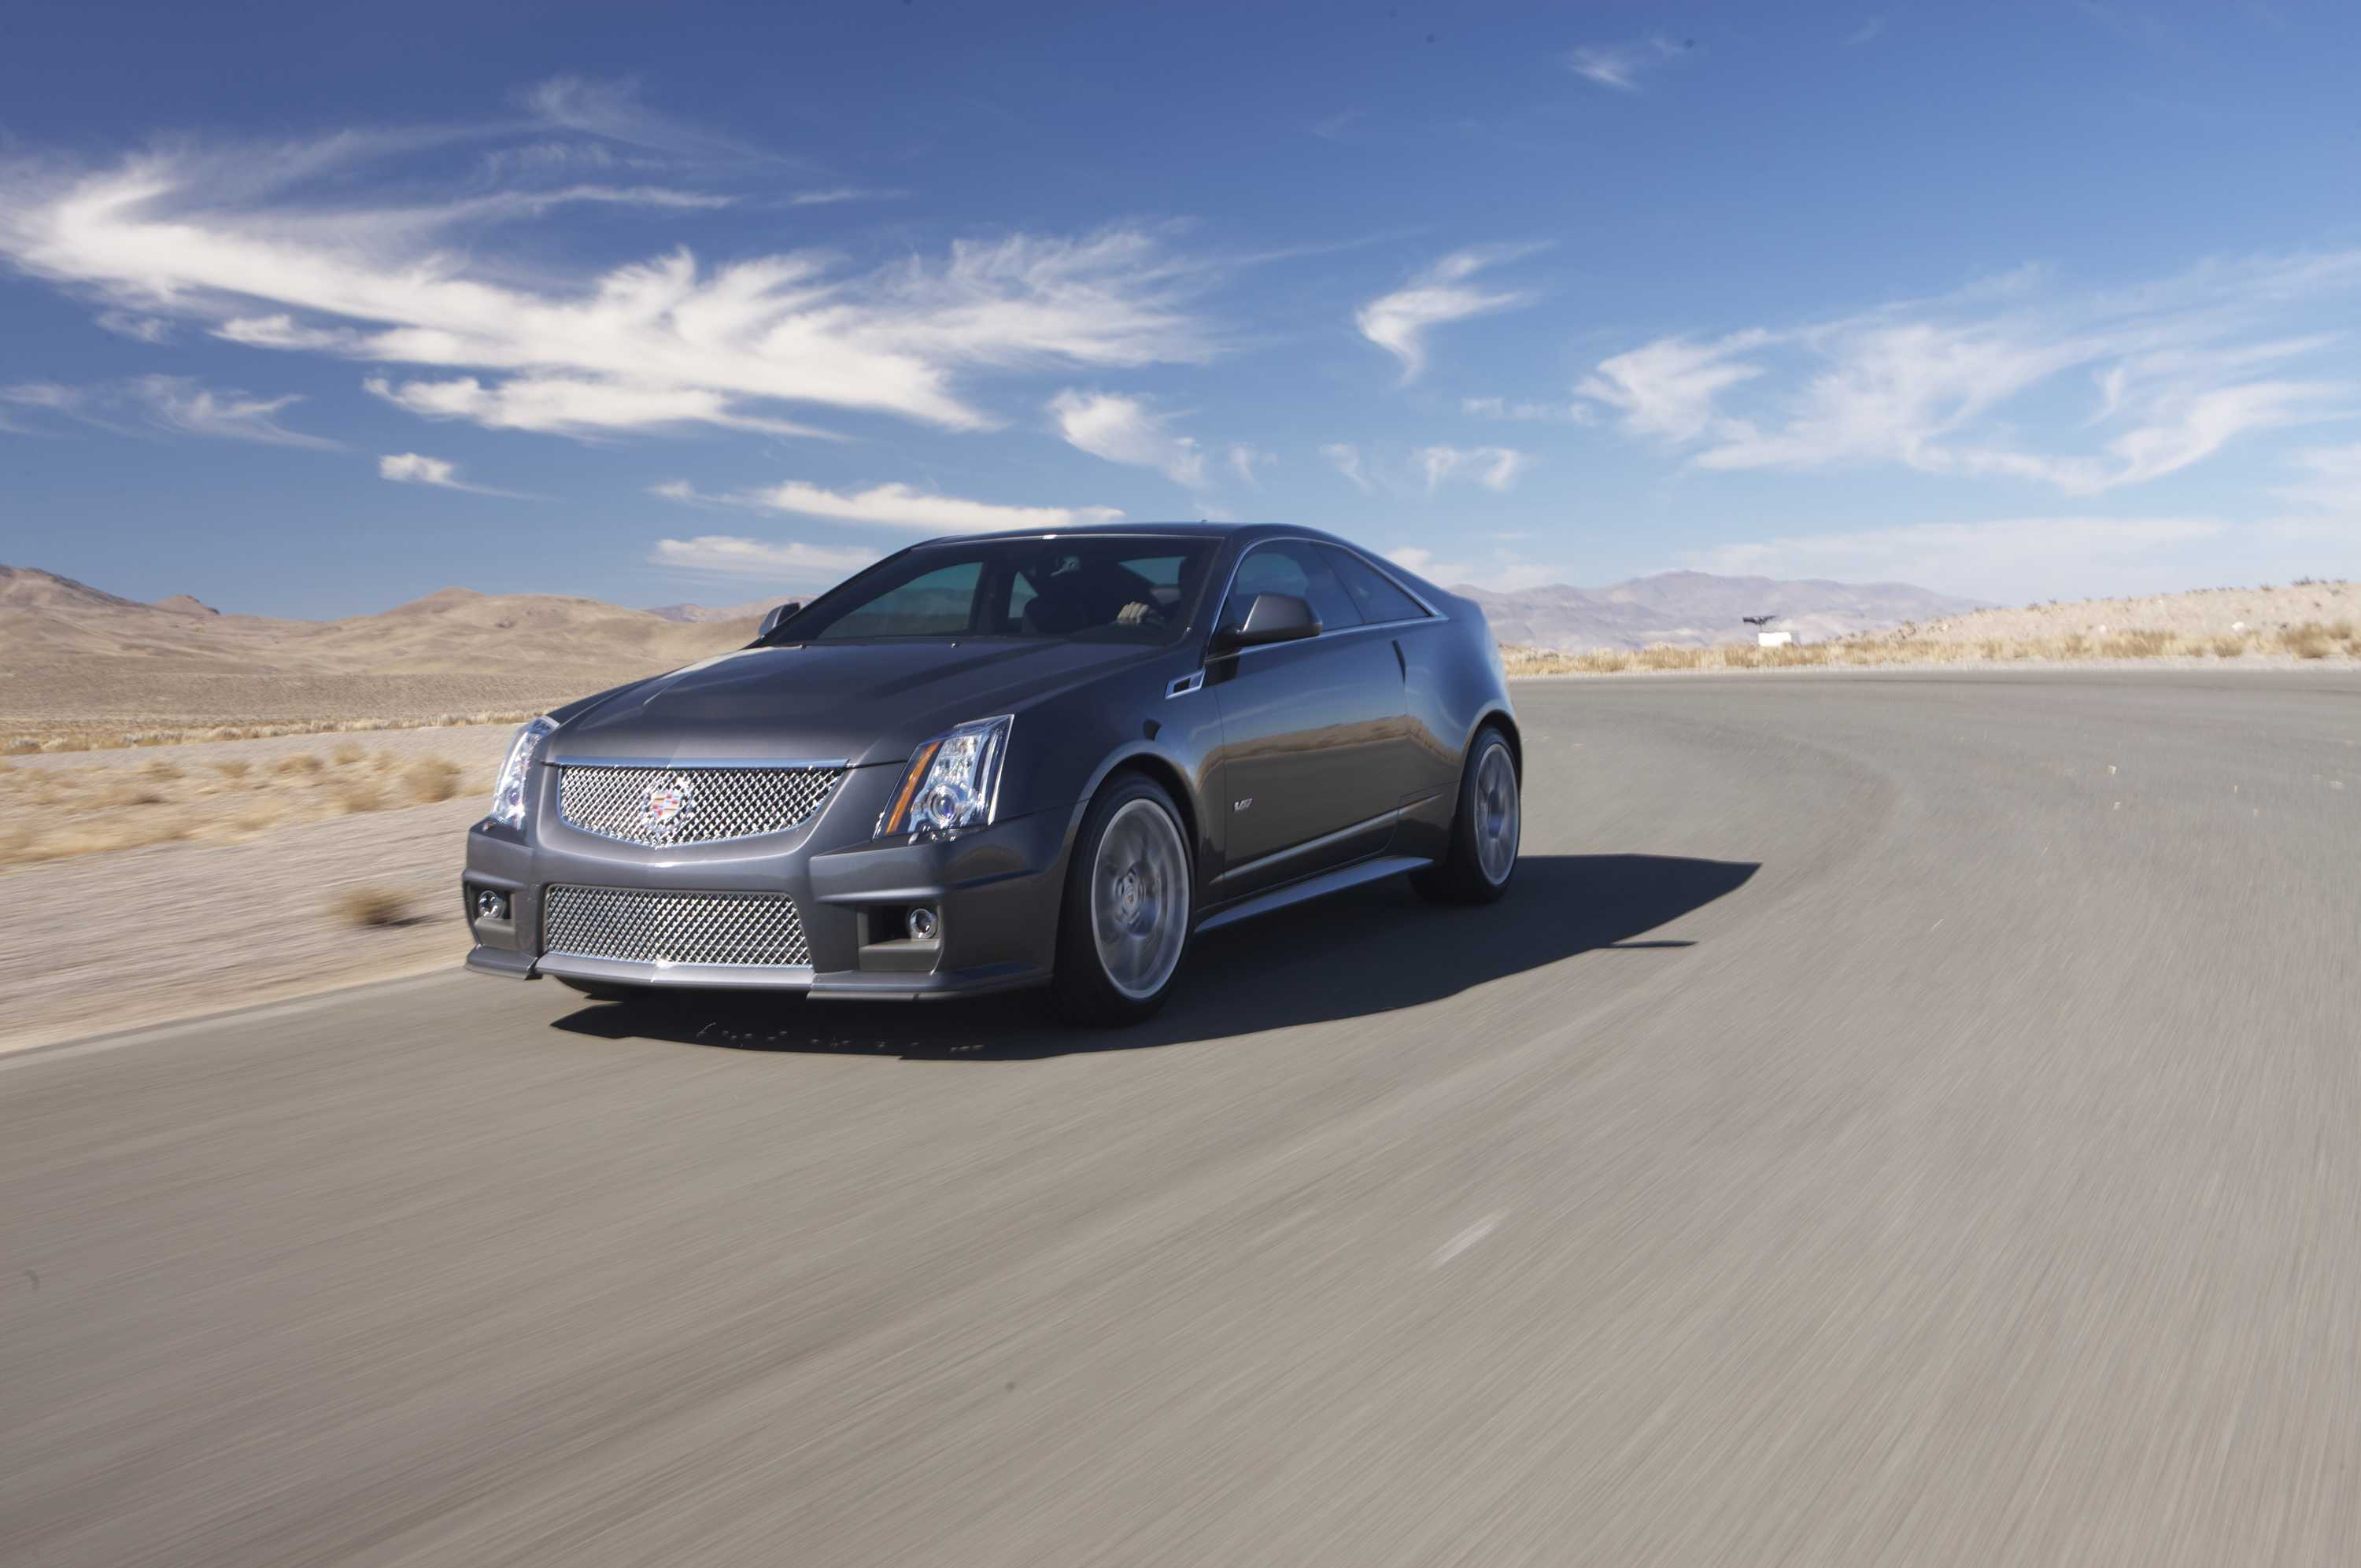 cadillac-cts-coupe-front-side-0-320265 Great Description About 2012 Cts-v for Sale with Inspiring Images Cars Review